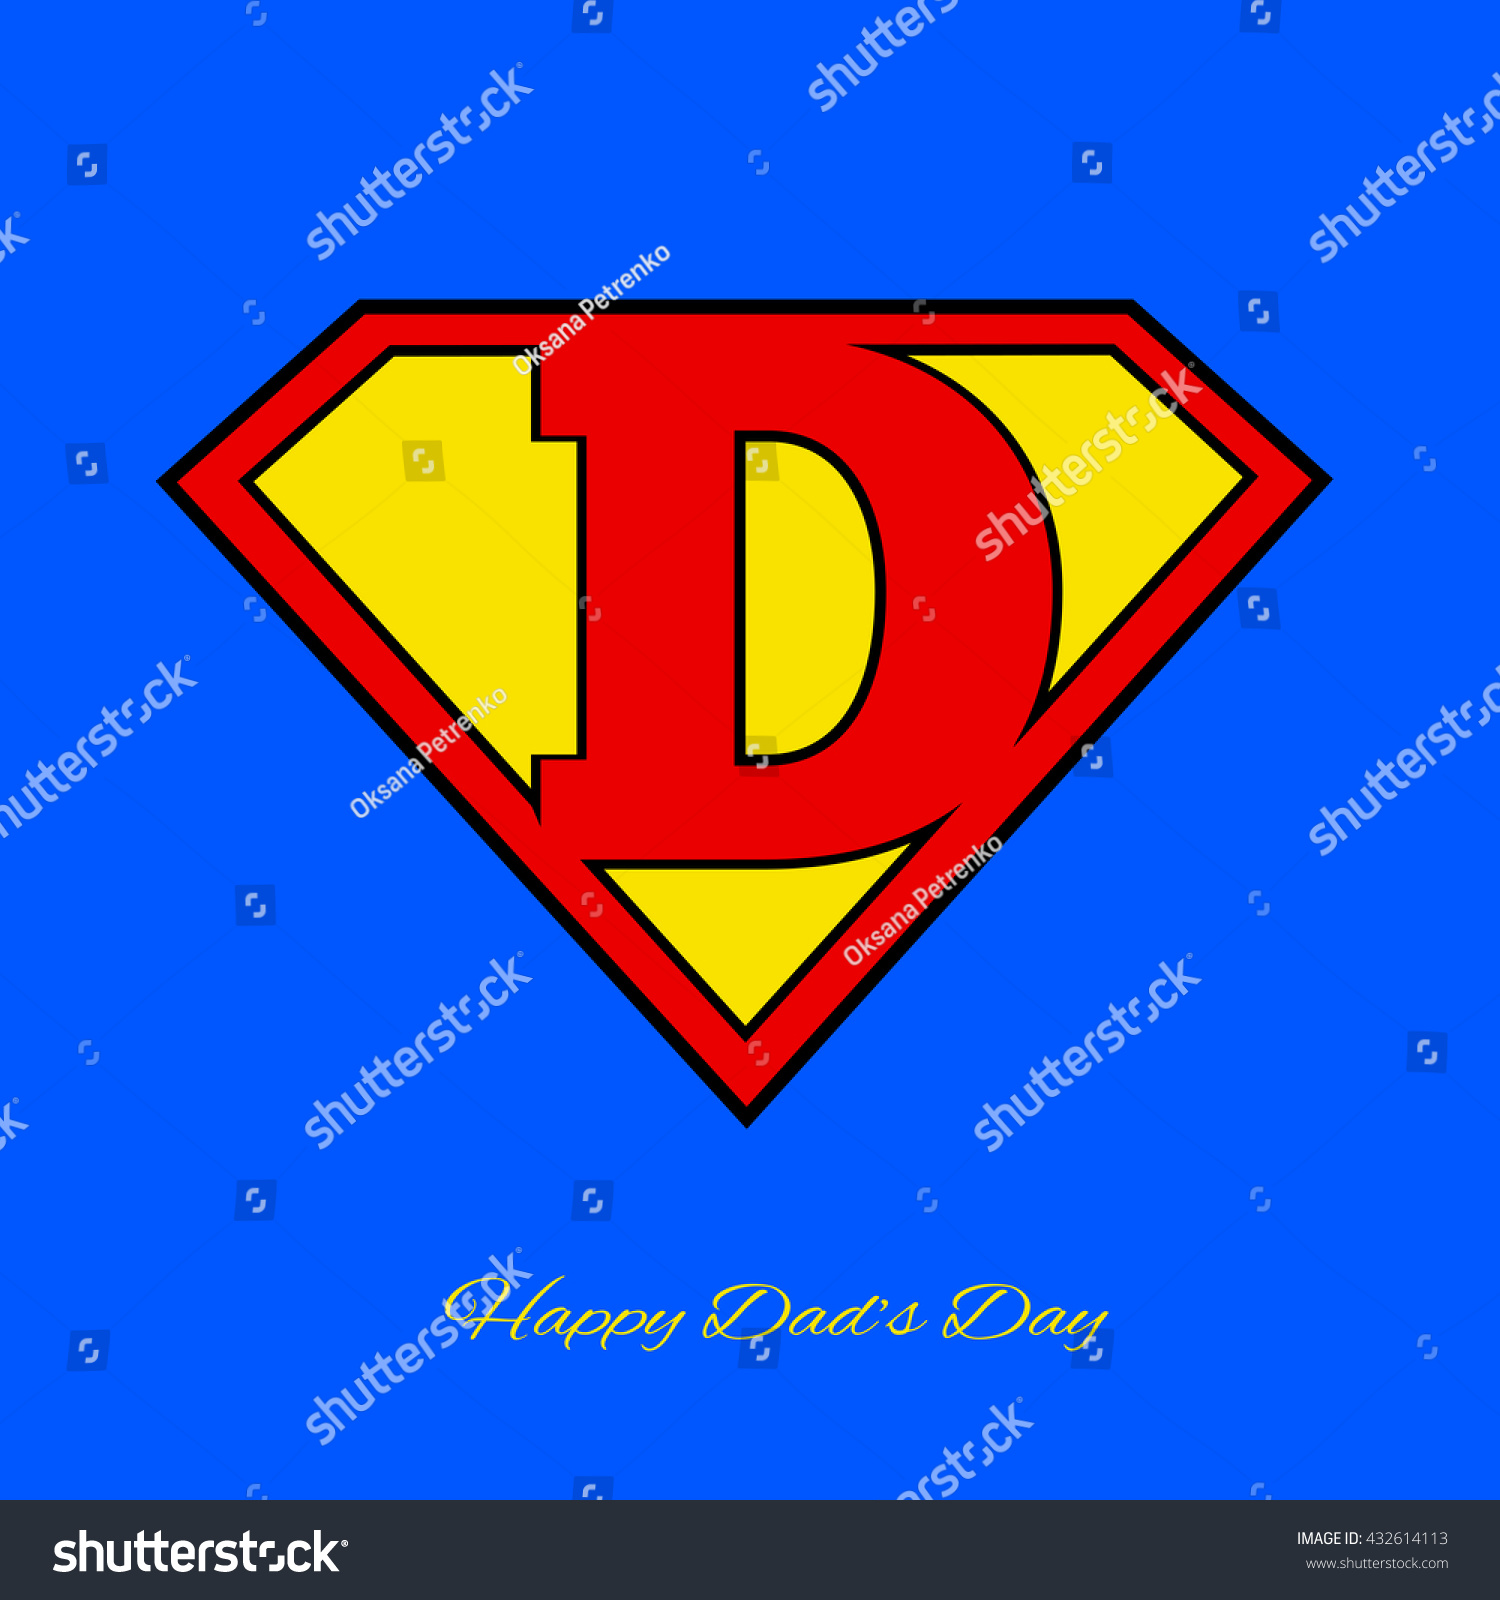 Super Dad Shield On Blue Background Stock Vector Royalty Free